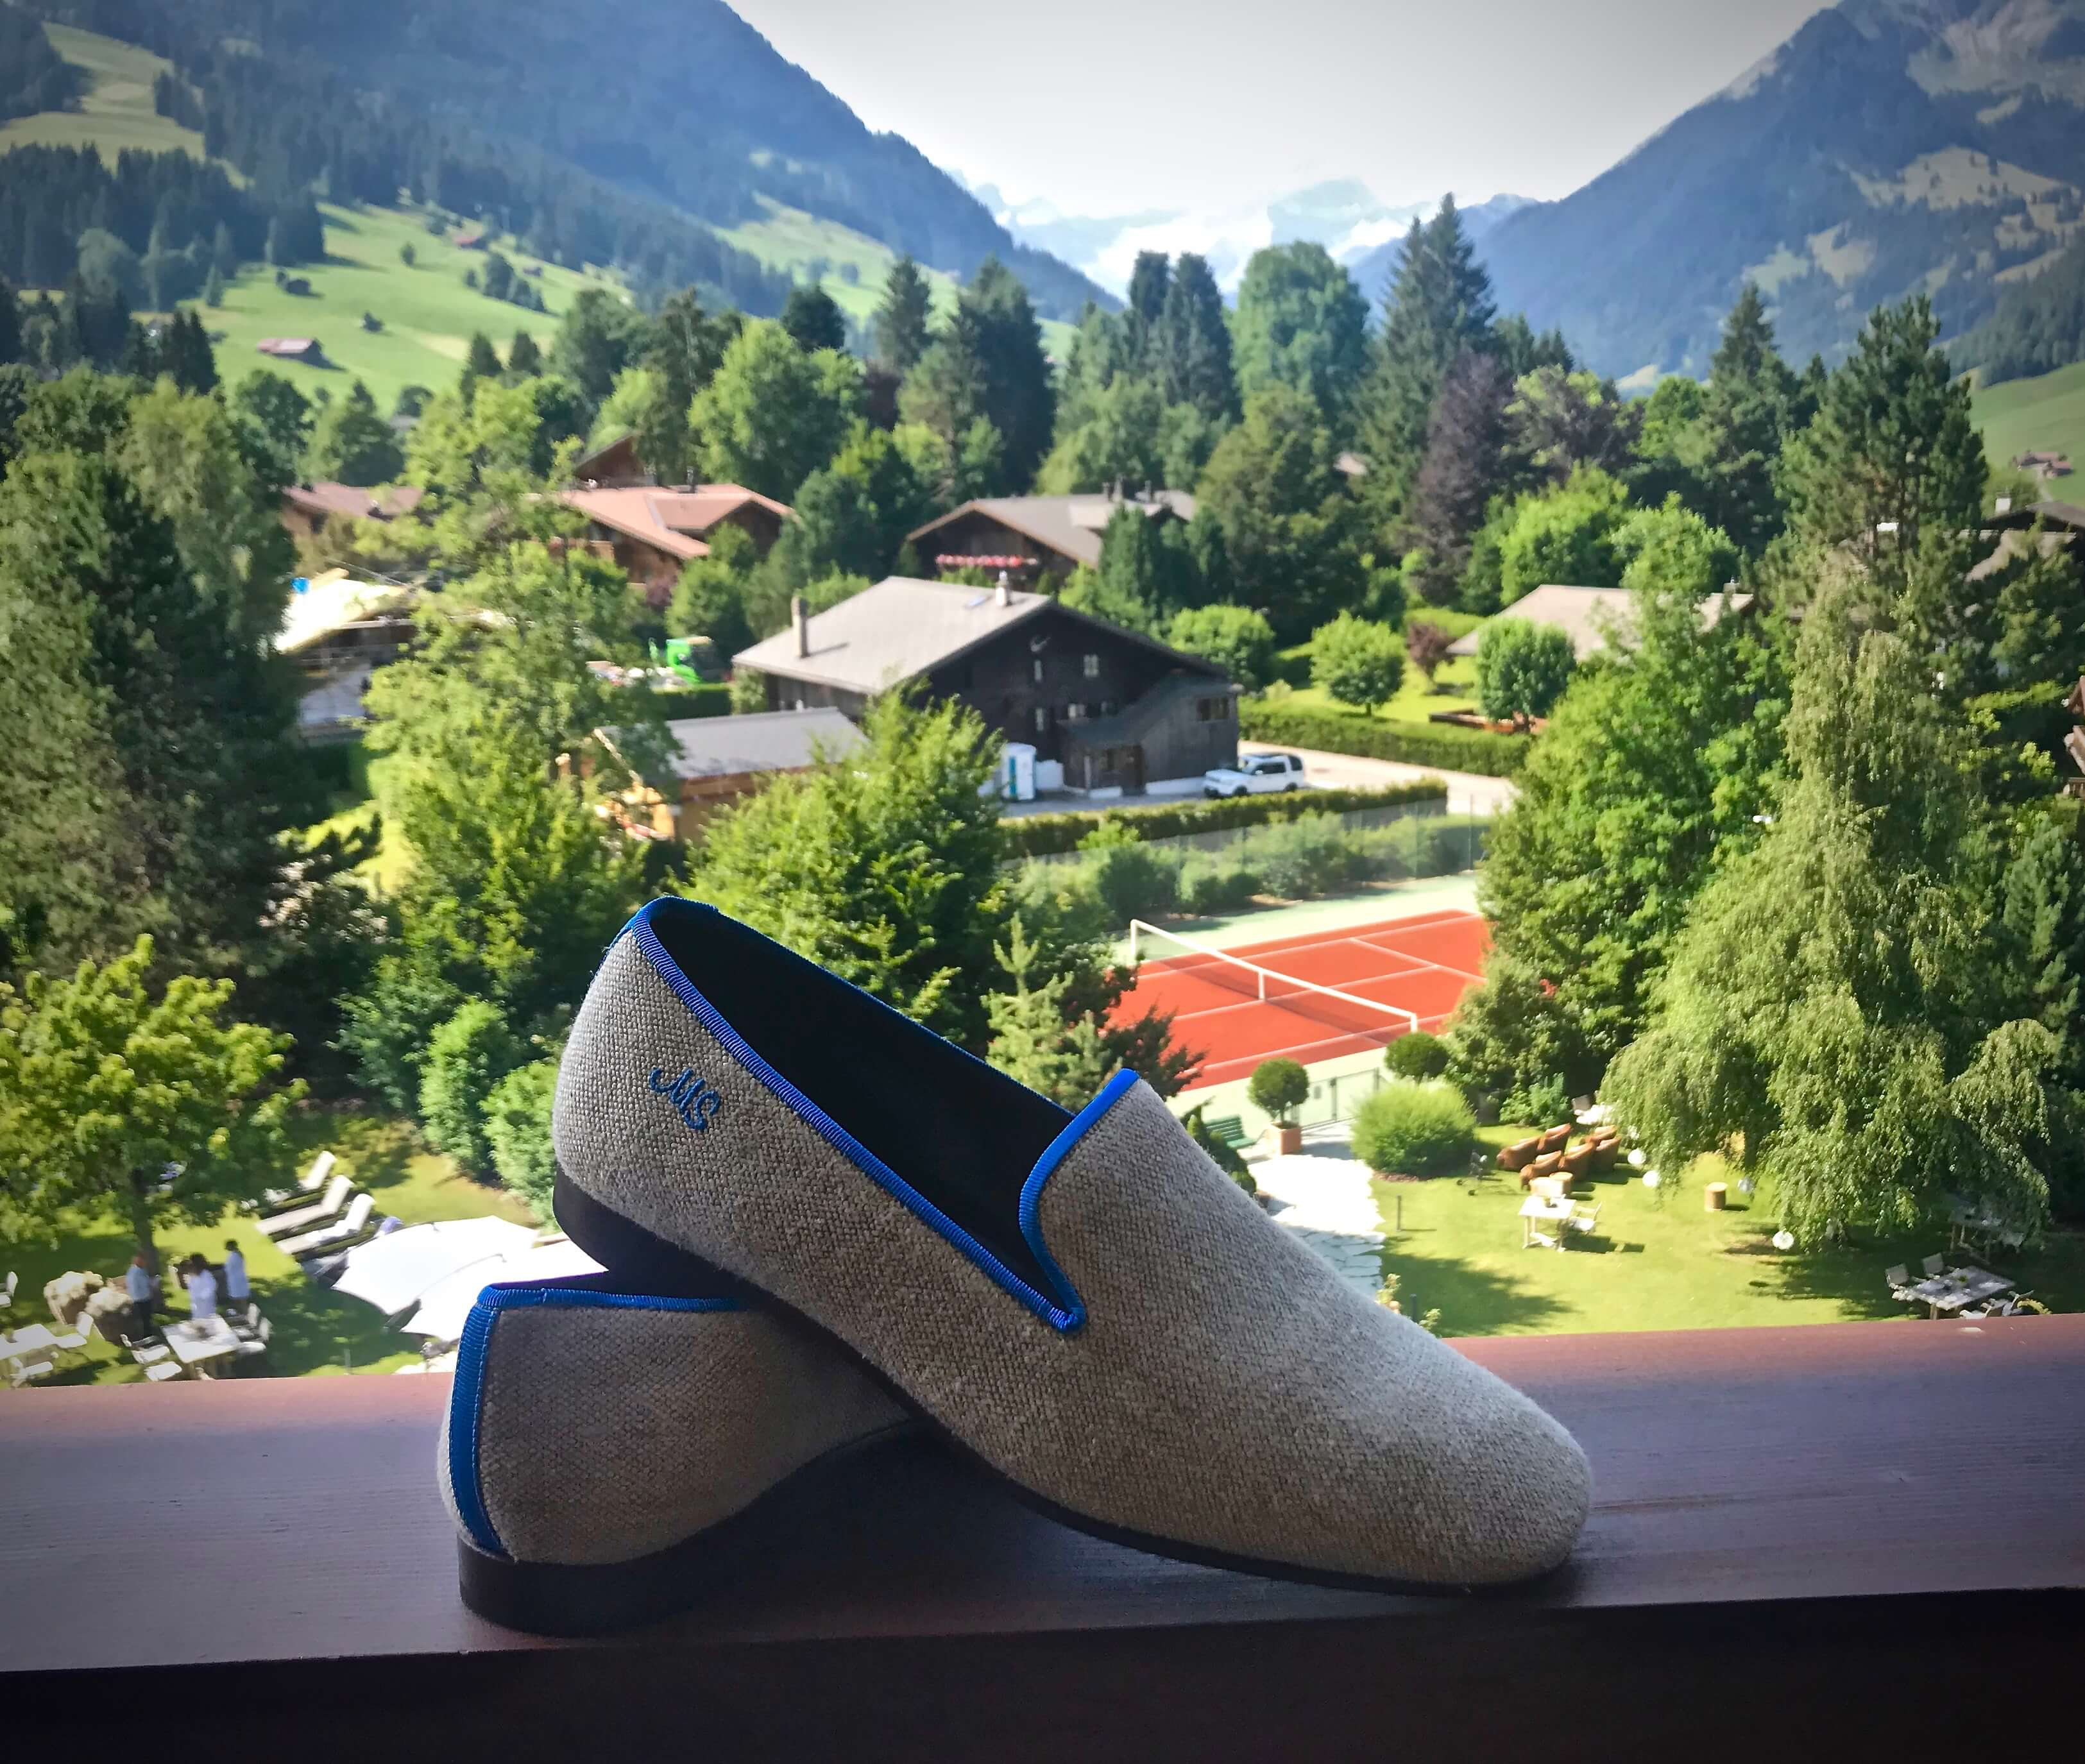 Mount Street Shoe Company em Gstaad © Miguel Seabra/Espiral do Tempo